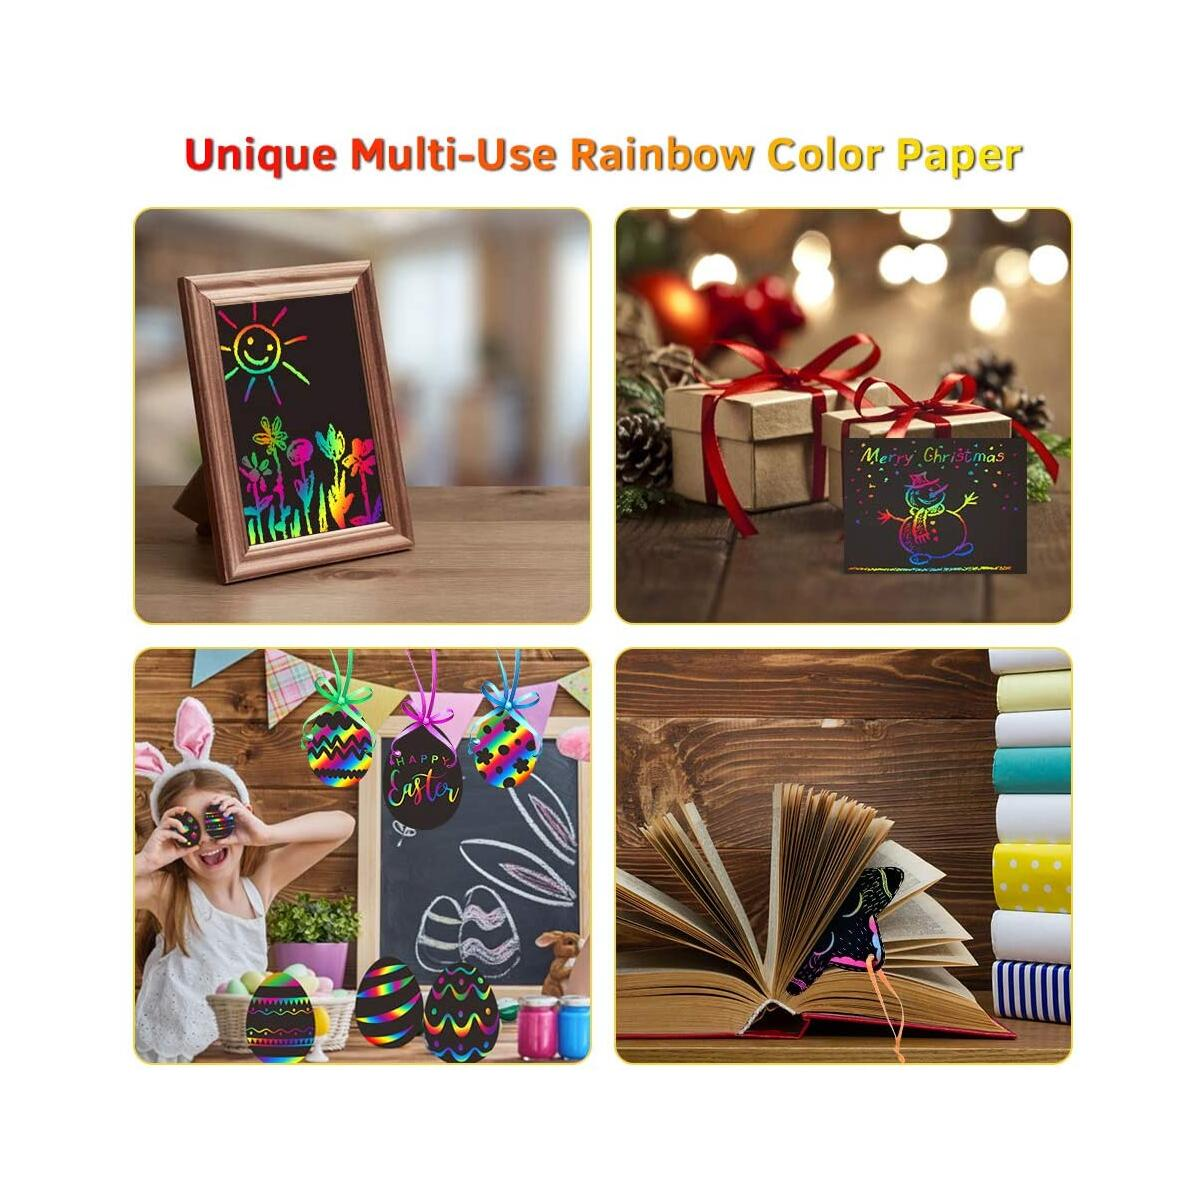 MayMoi Scratch Paper Art Set - 60 Pcs Rainbow Magic Scratch Paper Crafts Arts Supplies Kits for Party Christmas Birthday Gift (Includes 4 Stencils, 1 Brush & 5 Wooden Styluses)